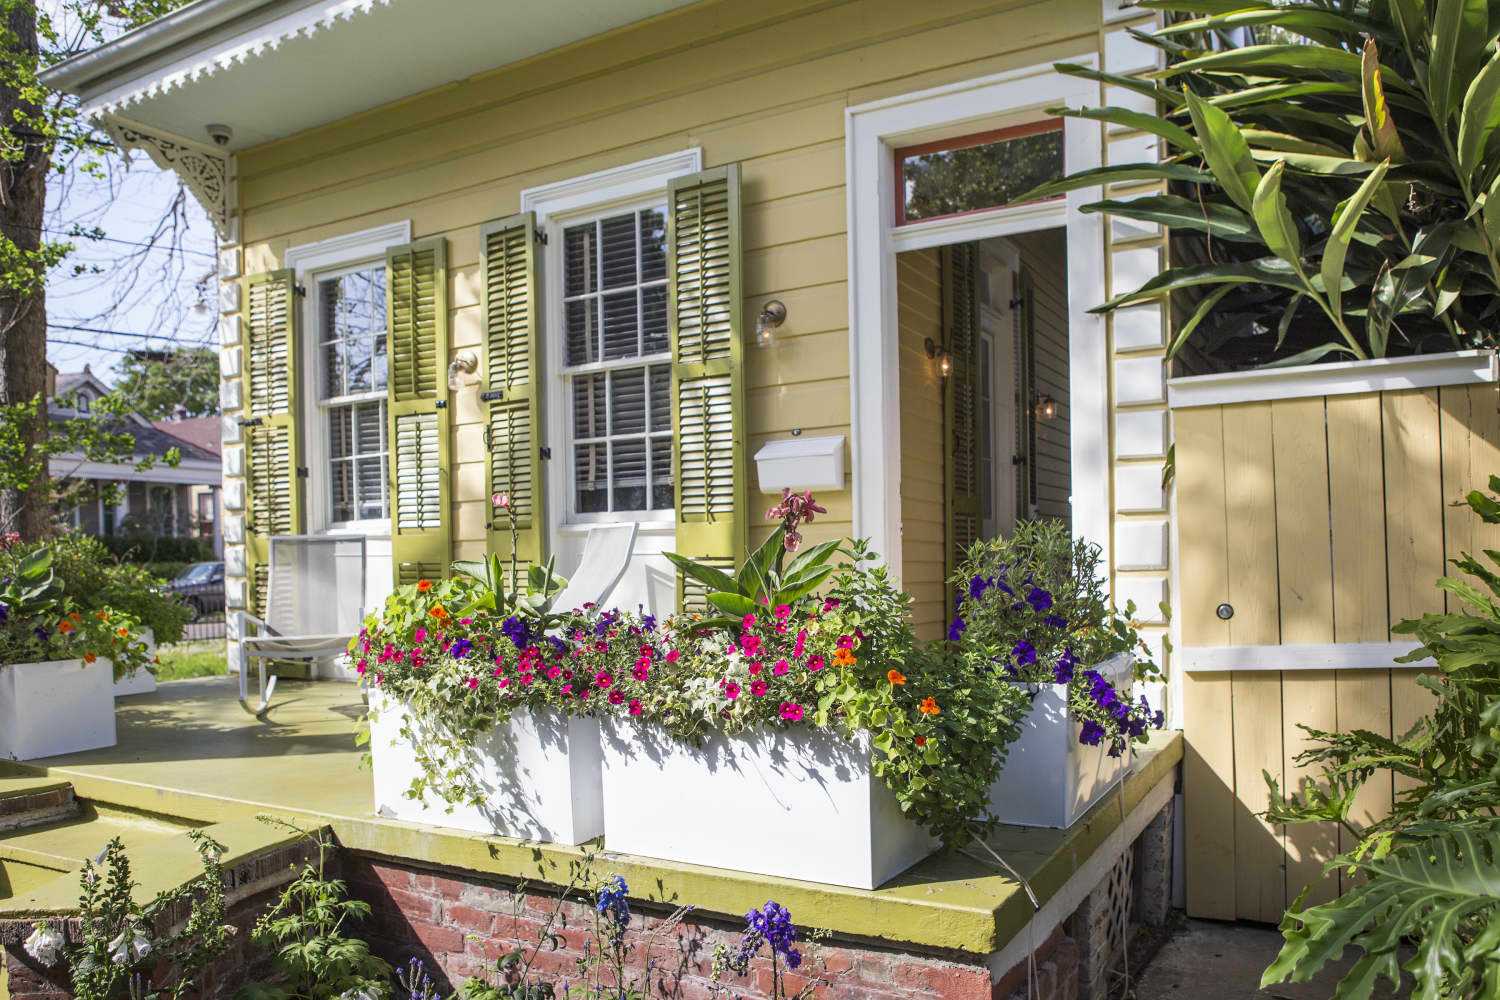 8 Moves Landscapers Use to Boost Curb Appeal When They're Short on Time